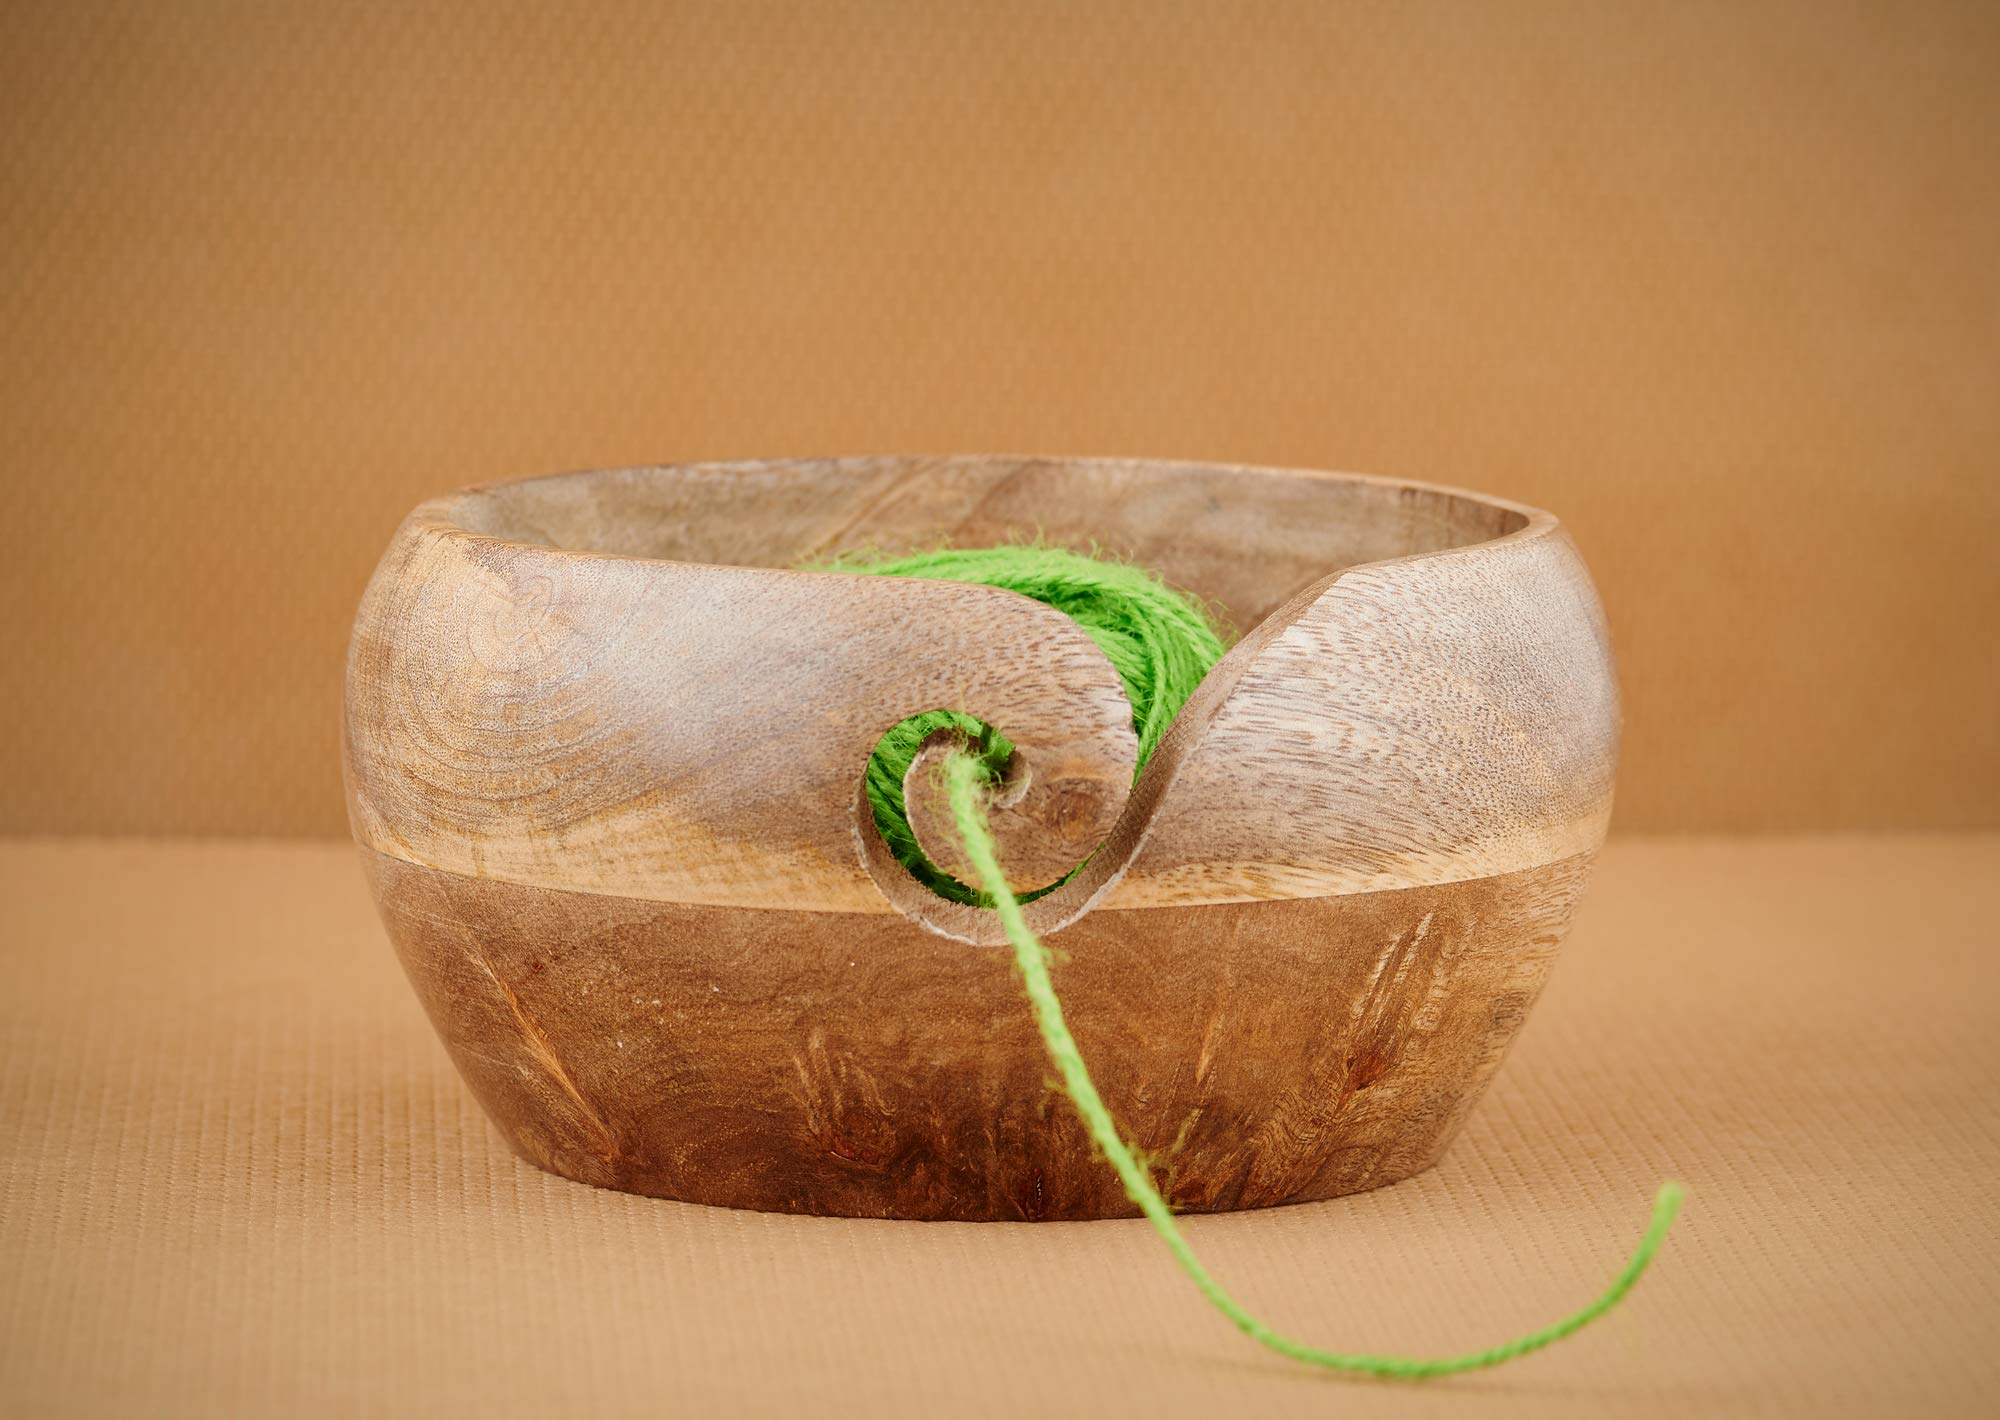 Mother's Day Special Wooden Yarn Bowl for Knitting and Crochet, Large Size 6'' X 3'' Durable and Portable Yarn Storage for Knitters- Beautiful Gift on All Occasions. (Design 4)